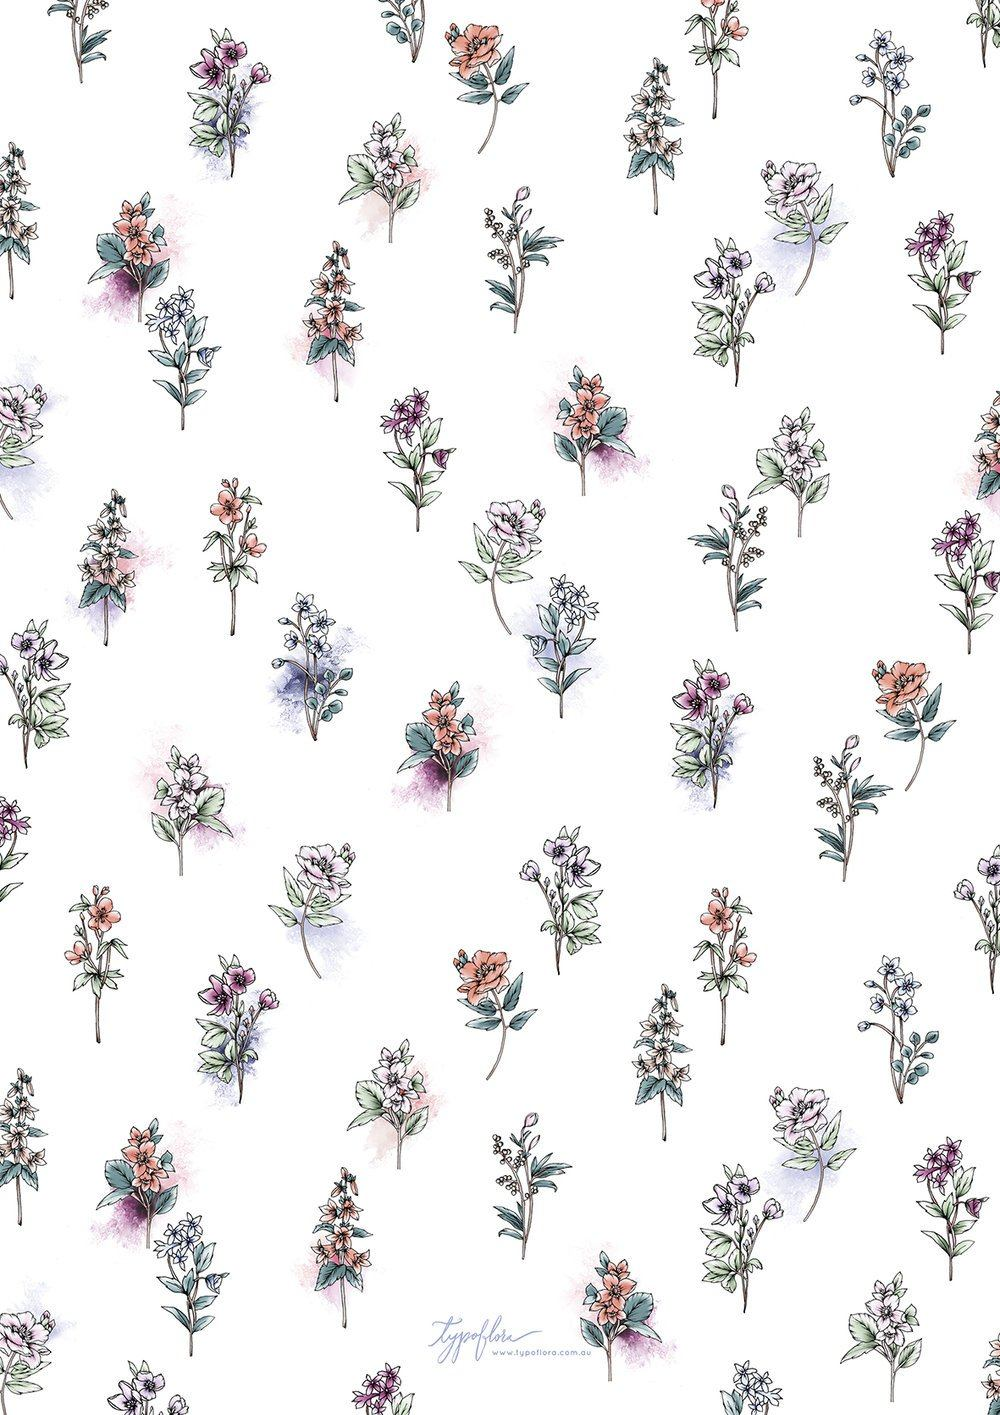 Botanical Garden Giftwrap Wrapping Papers Typoflora